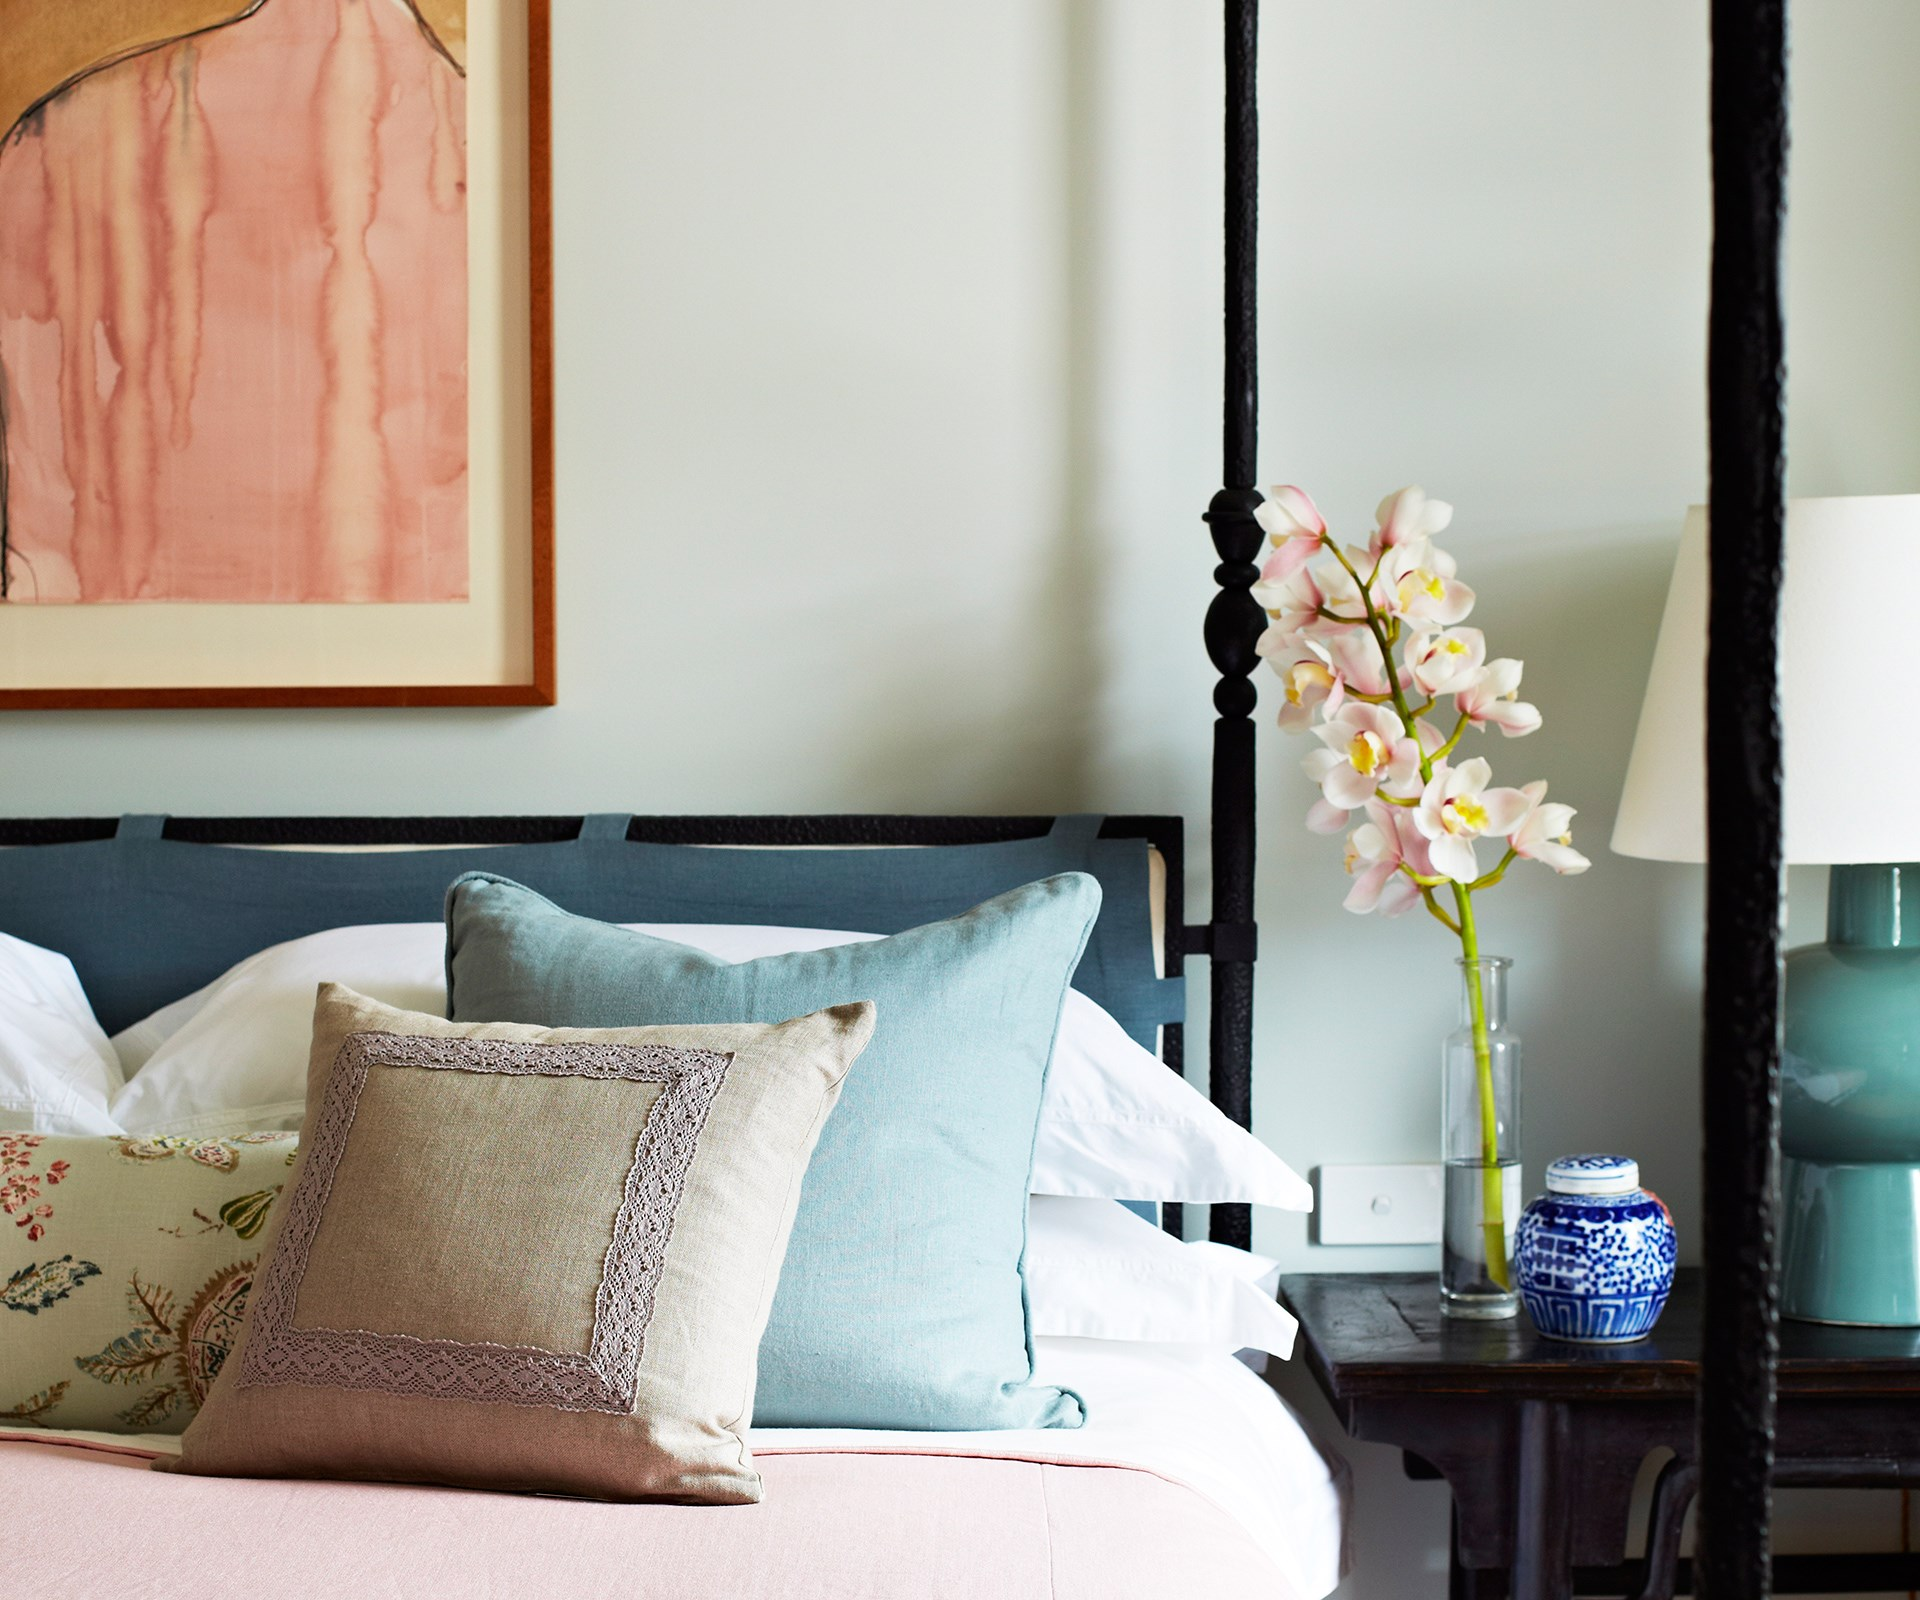 """Turn your spare room into the [perfect guest bedroom](http://www.homestolove.com.au/7-shortcuts-to-create-the-perfect-guest-bedroom-1729/?utm_campaign=supplier/